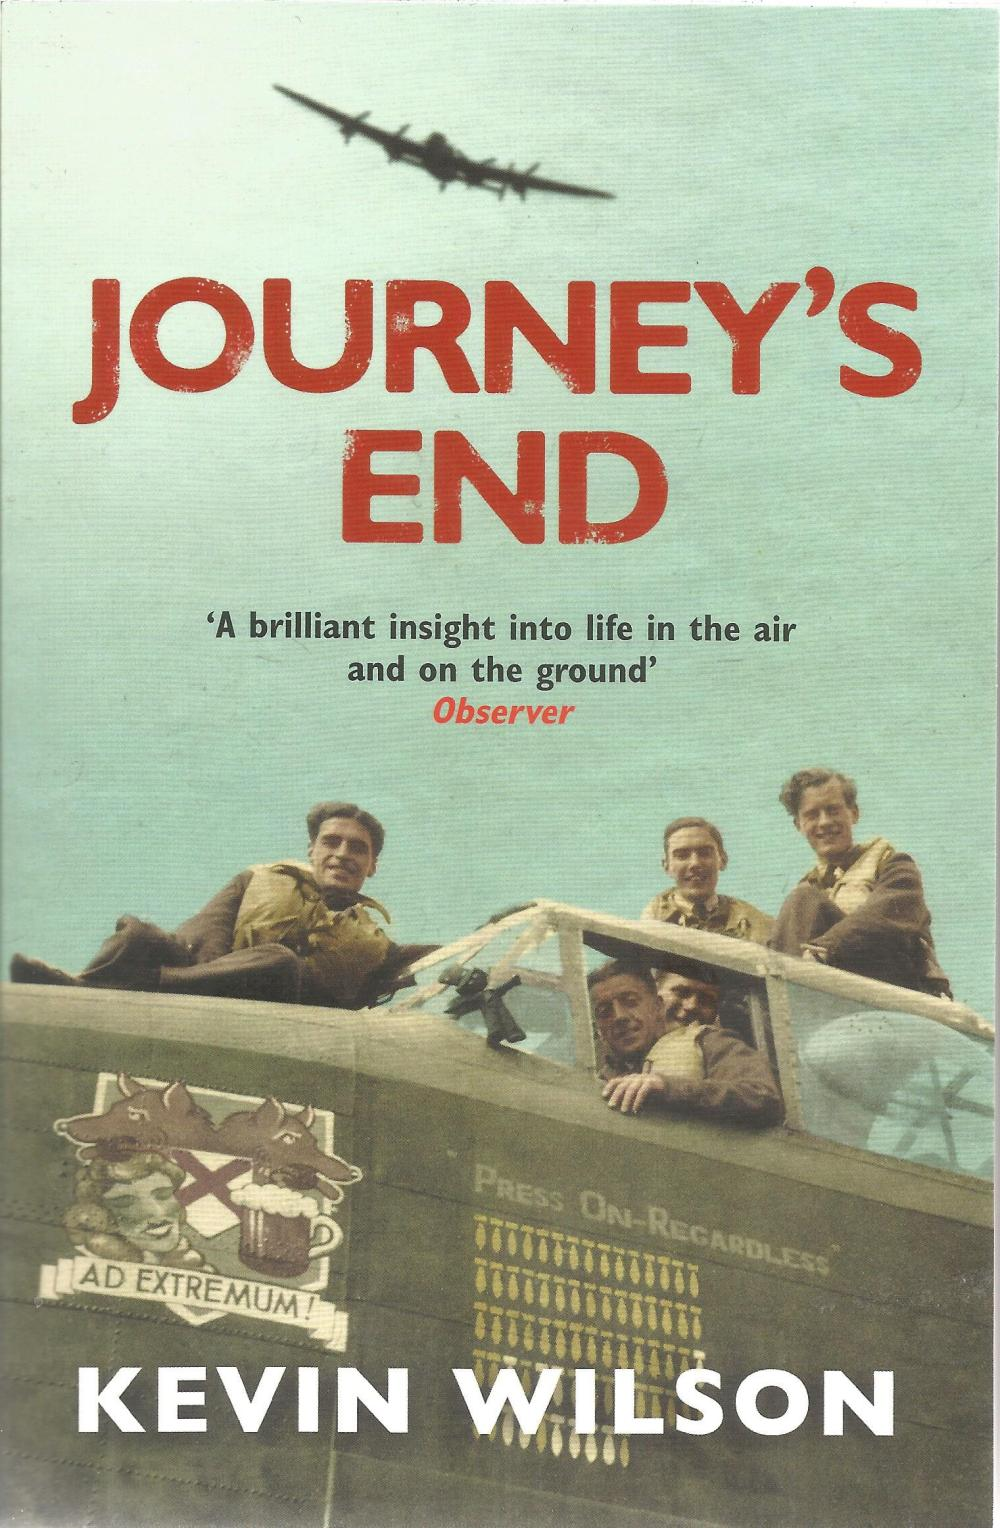 WW2 Bomber soft back book Journeys End by Kevin Wilson signed by the author and W/O Harry Irons